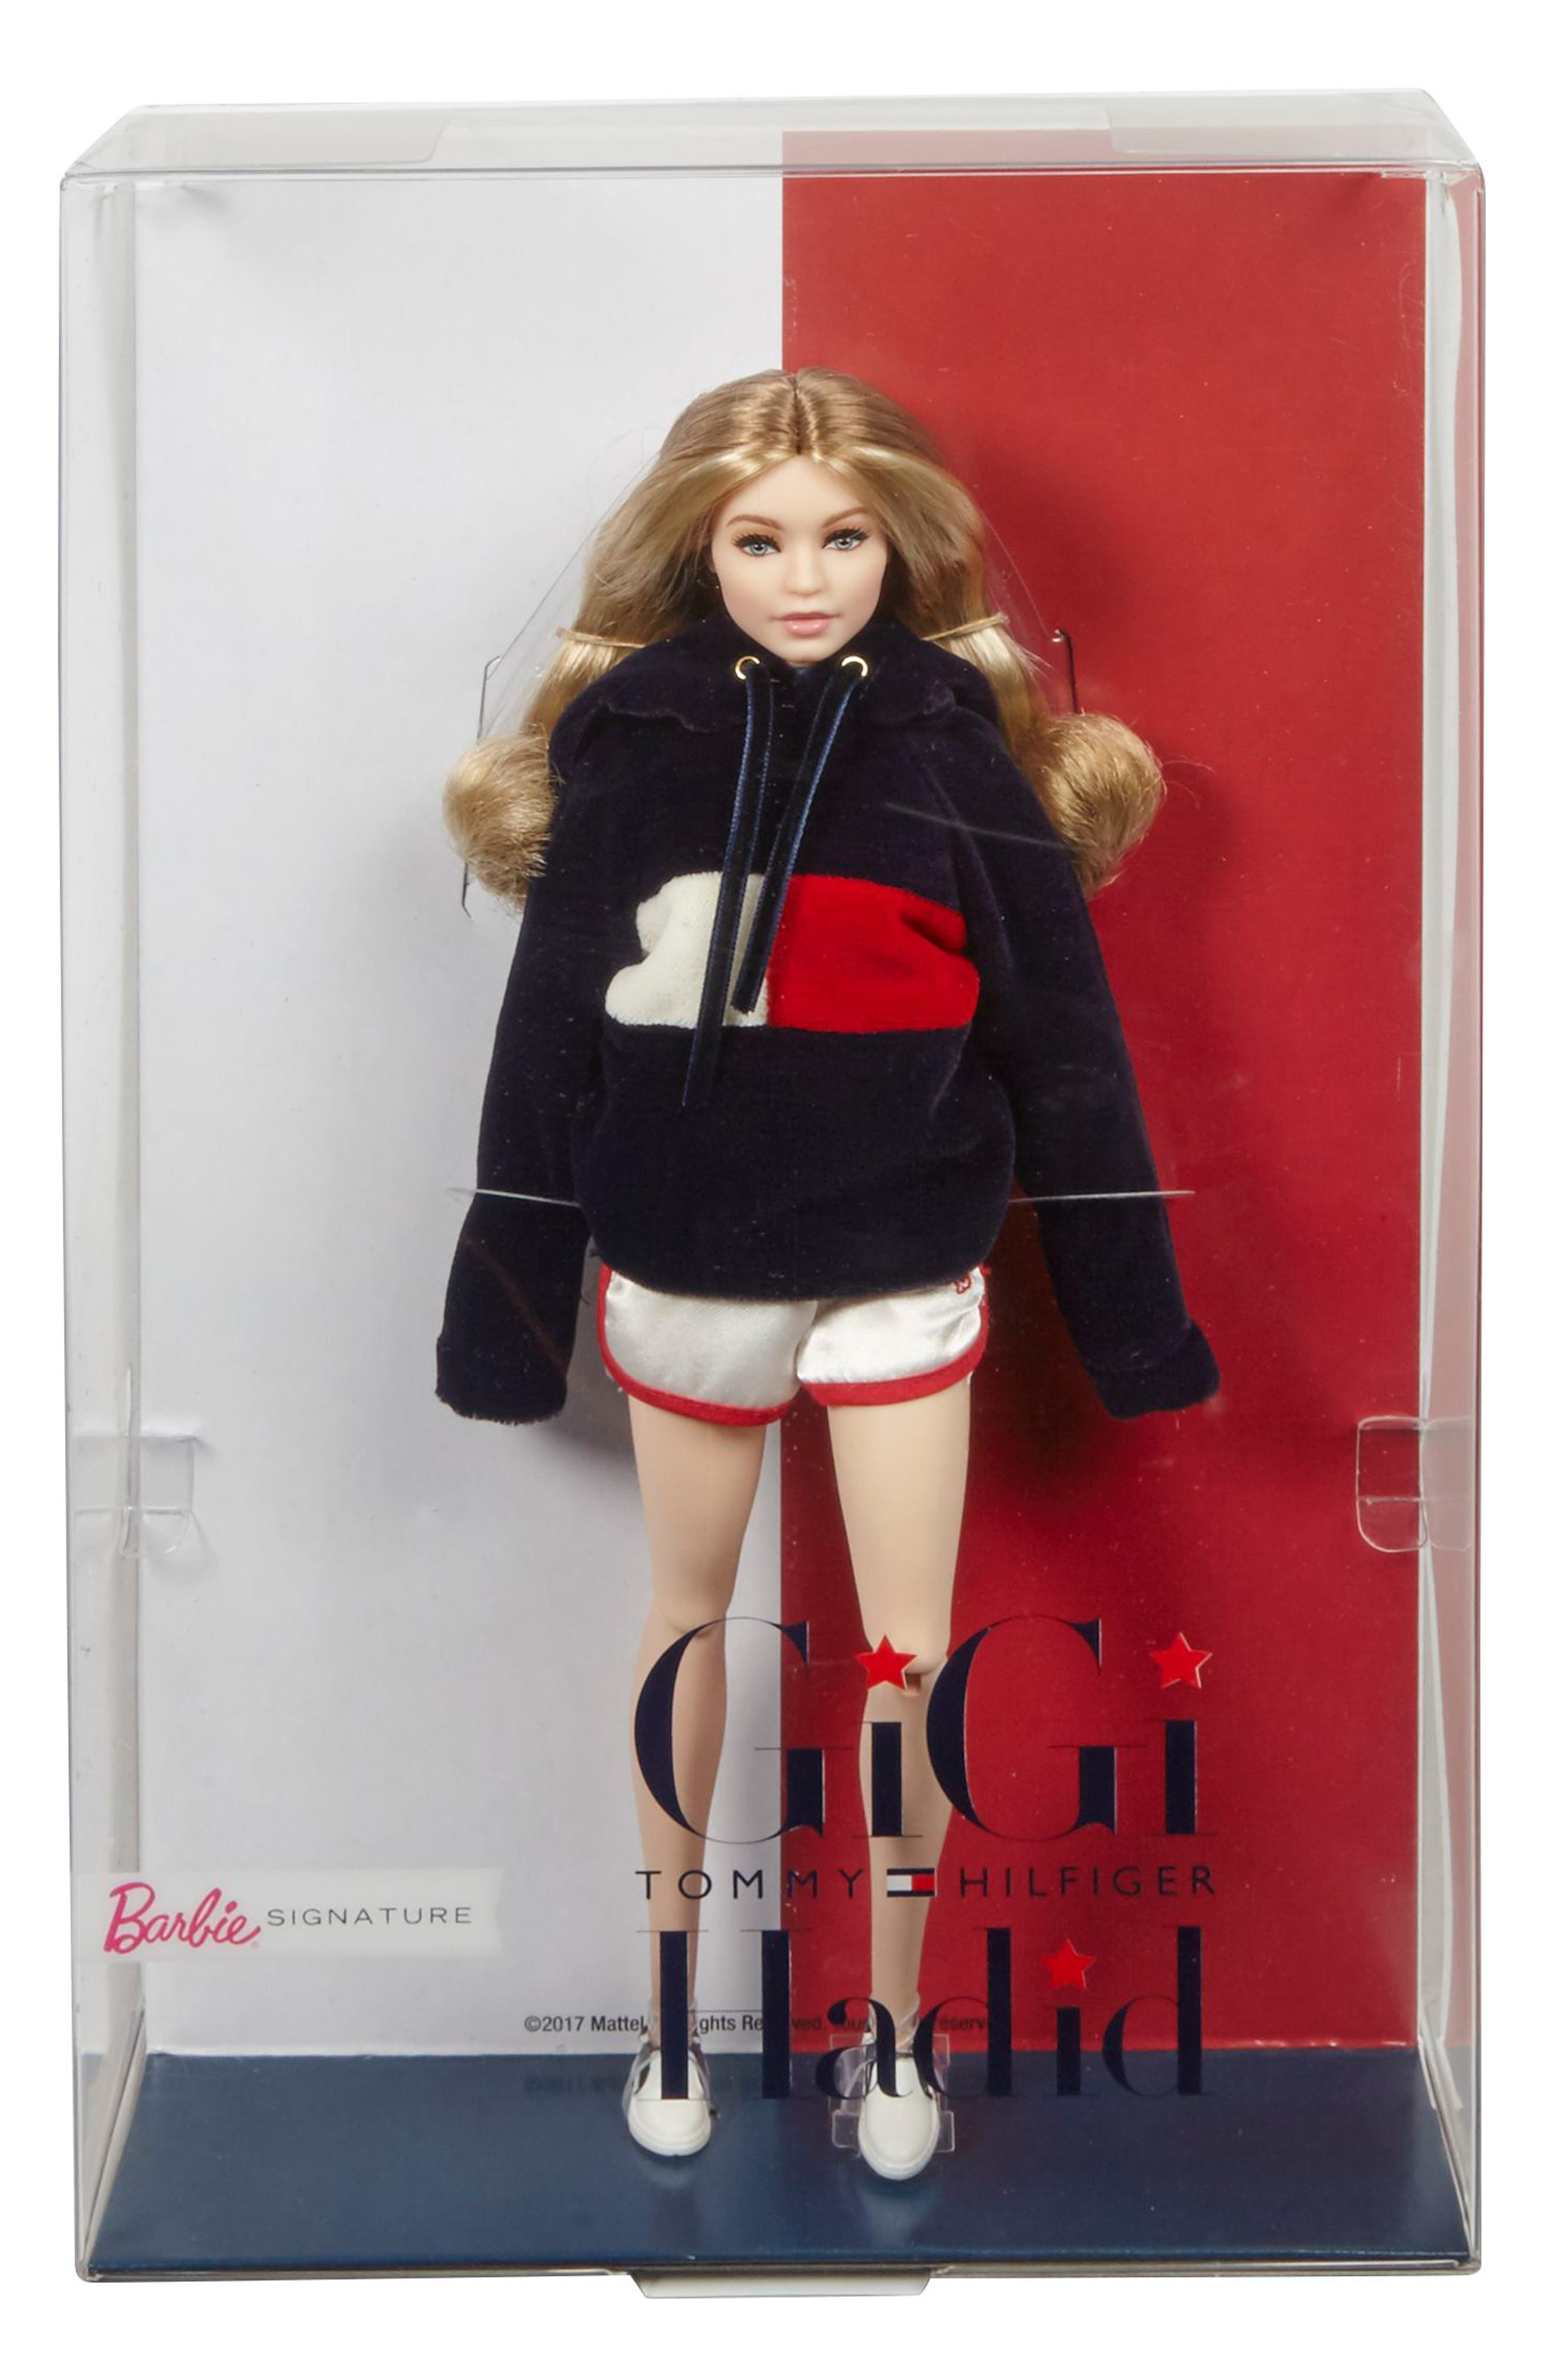 Barbie<sup>®</sup> Signature Tommy Hilfiger x Gigi Hadid Doll,                         Main,                         color,